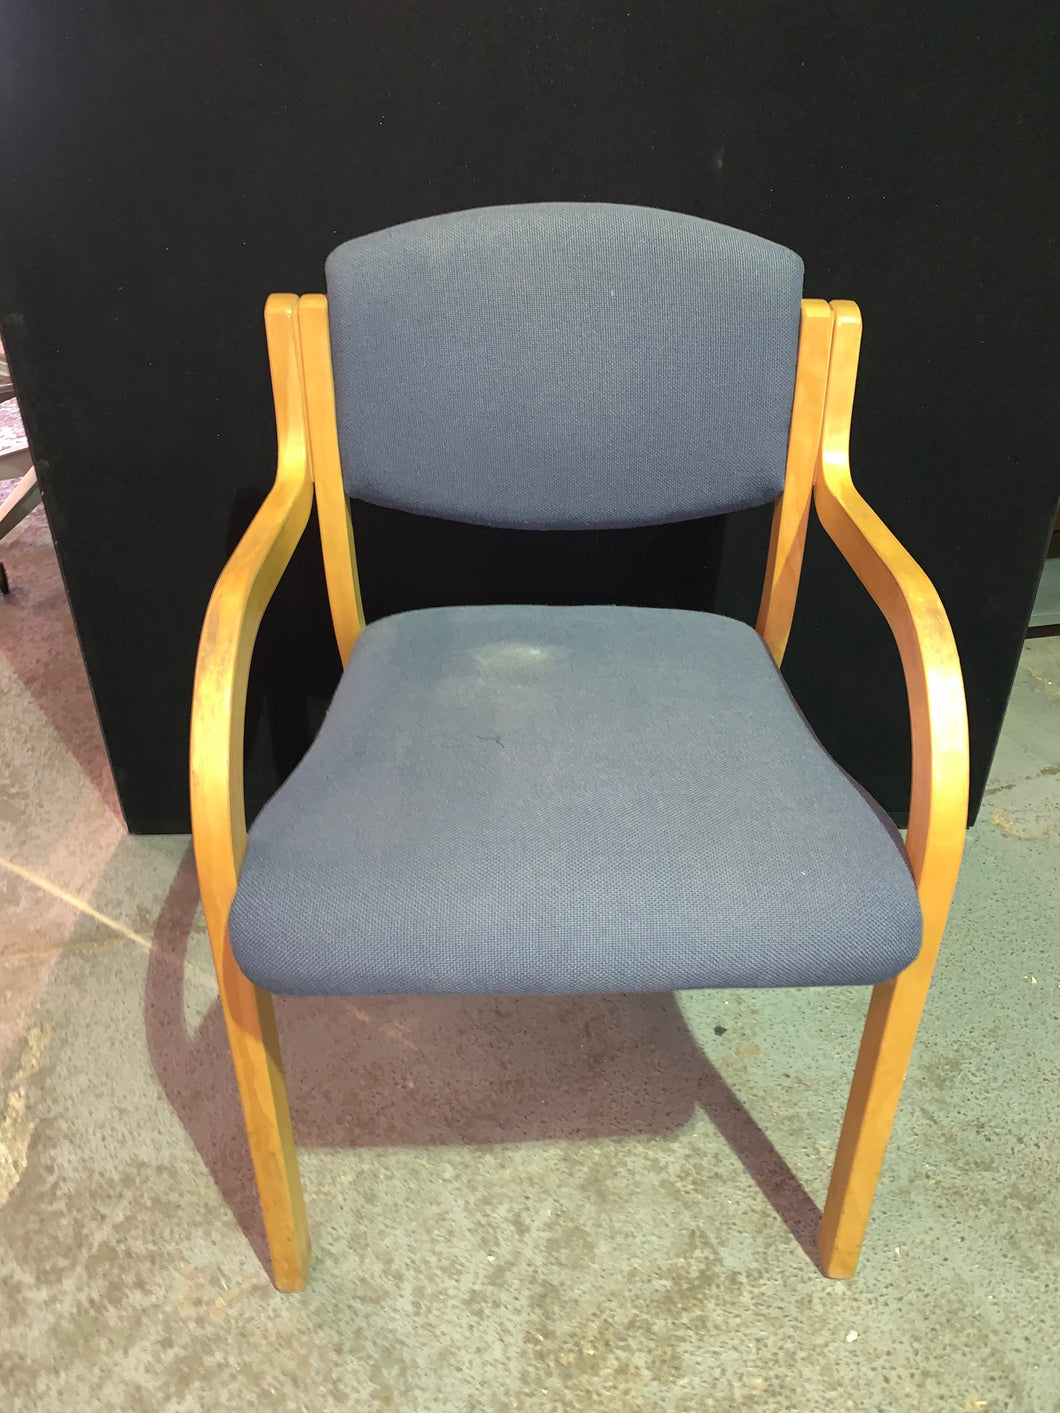 Blue Fabric Meeting/Reception Chair - Flogit2us.com